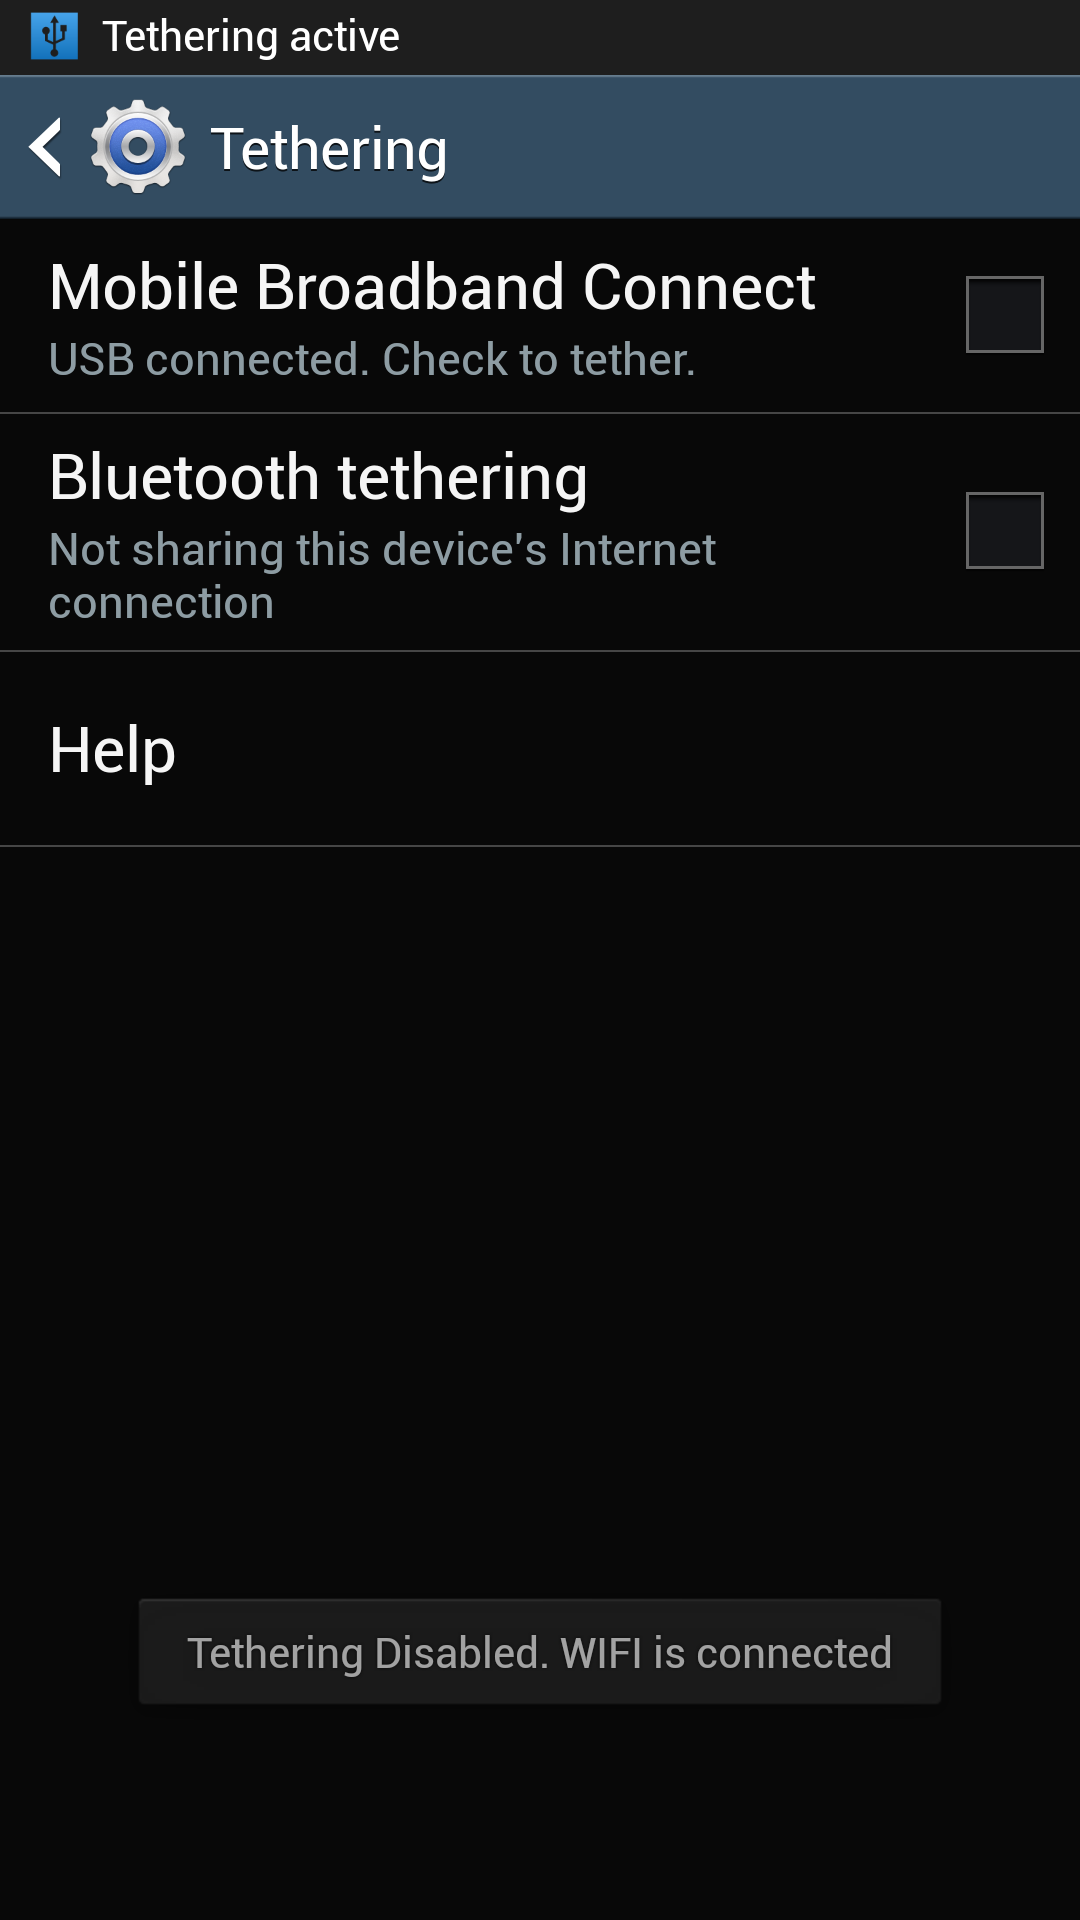 Galaxy S4 Tethering Disabled because Wi-Fi is Enabled